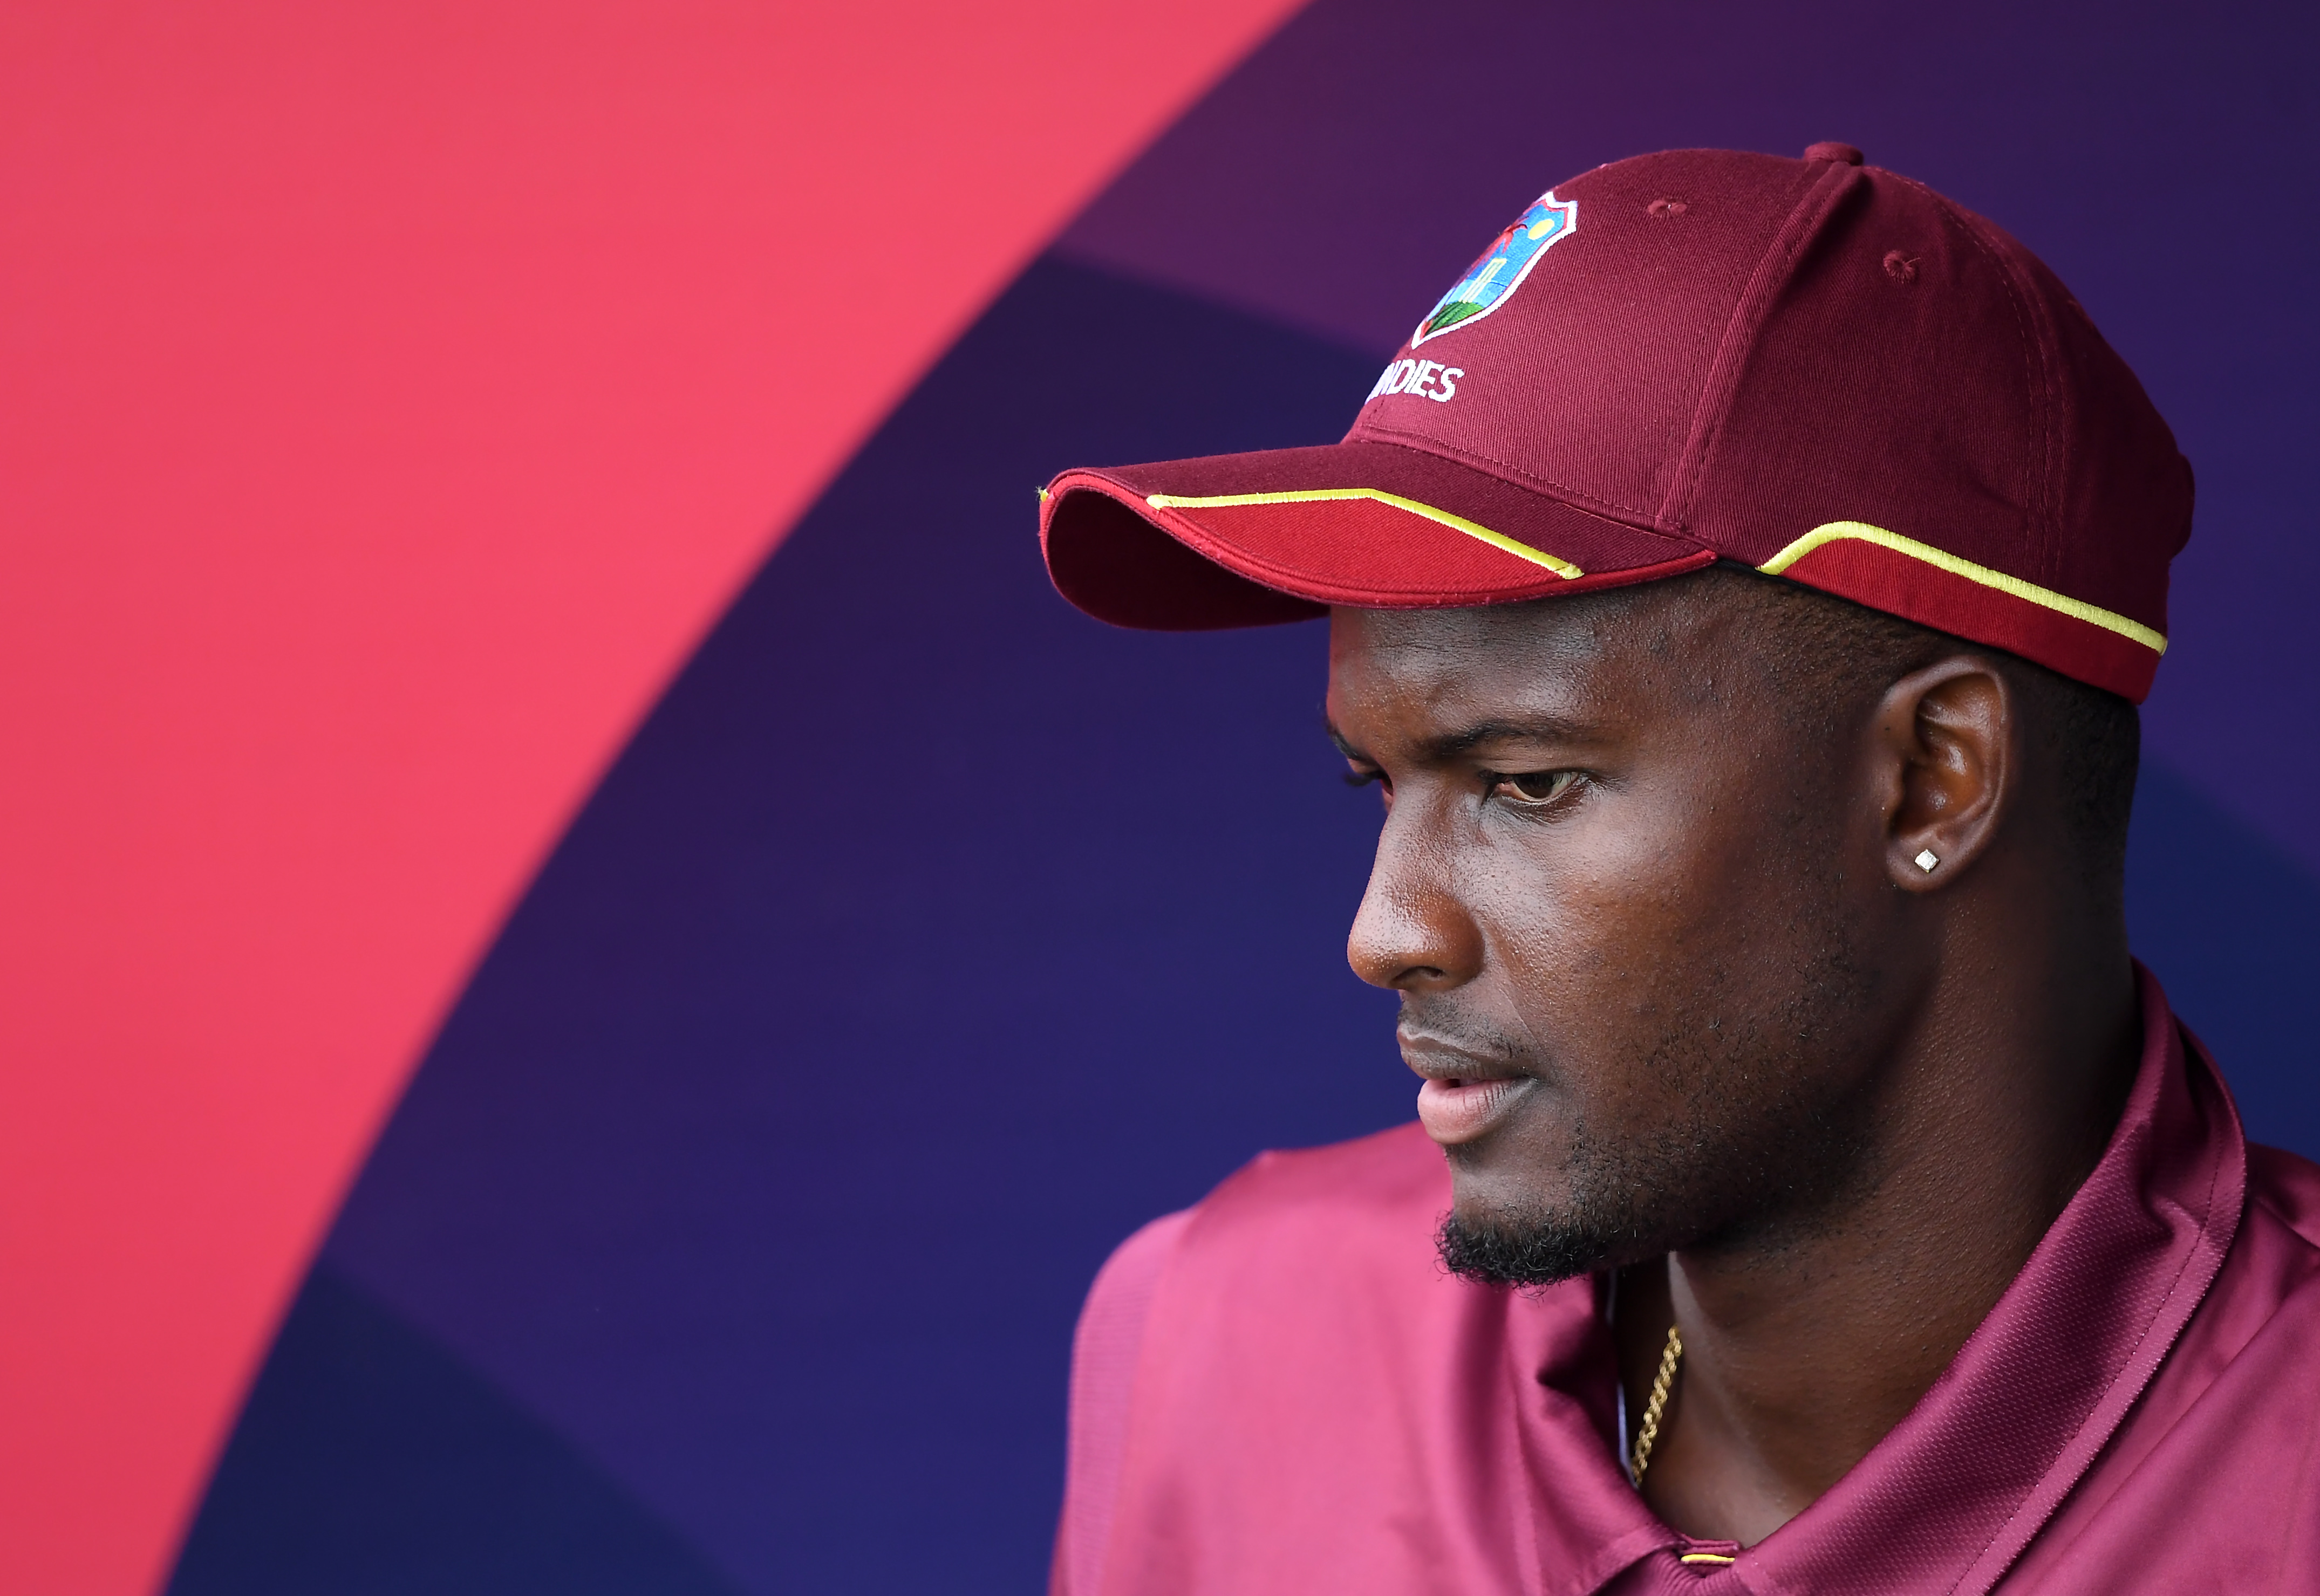 West Indies captain Jason Holder. (Photo by Alex Davidson/Getty Images)